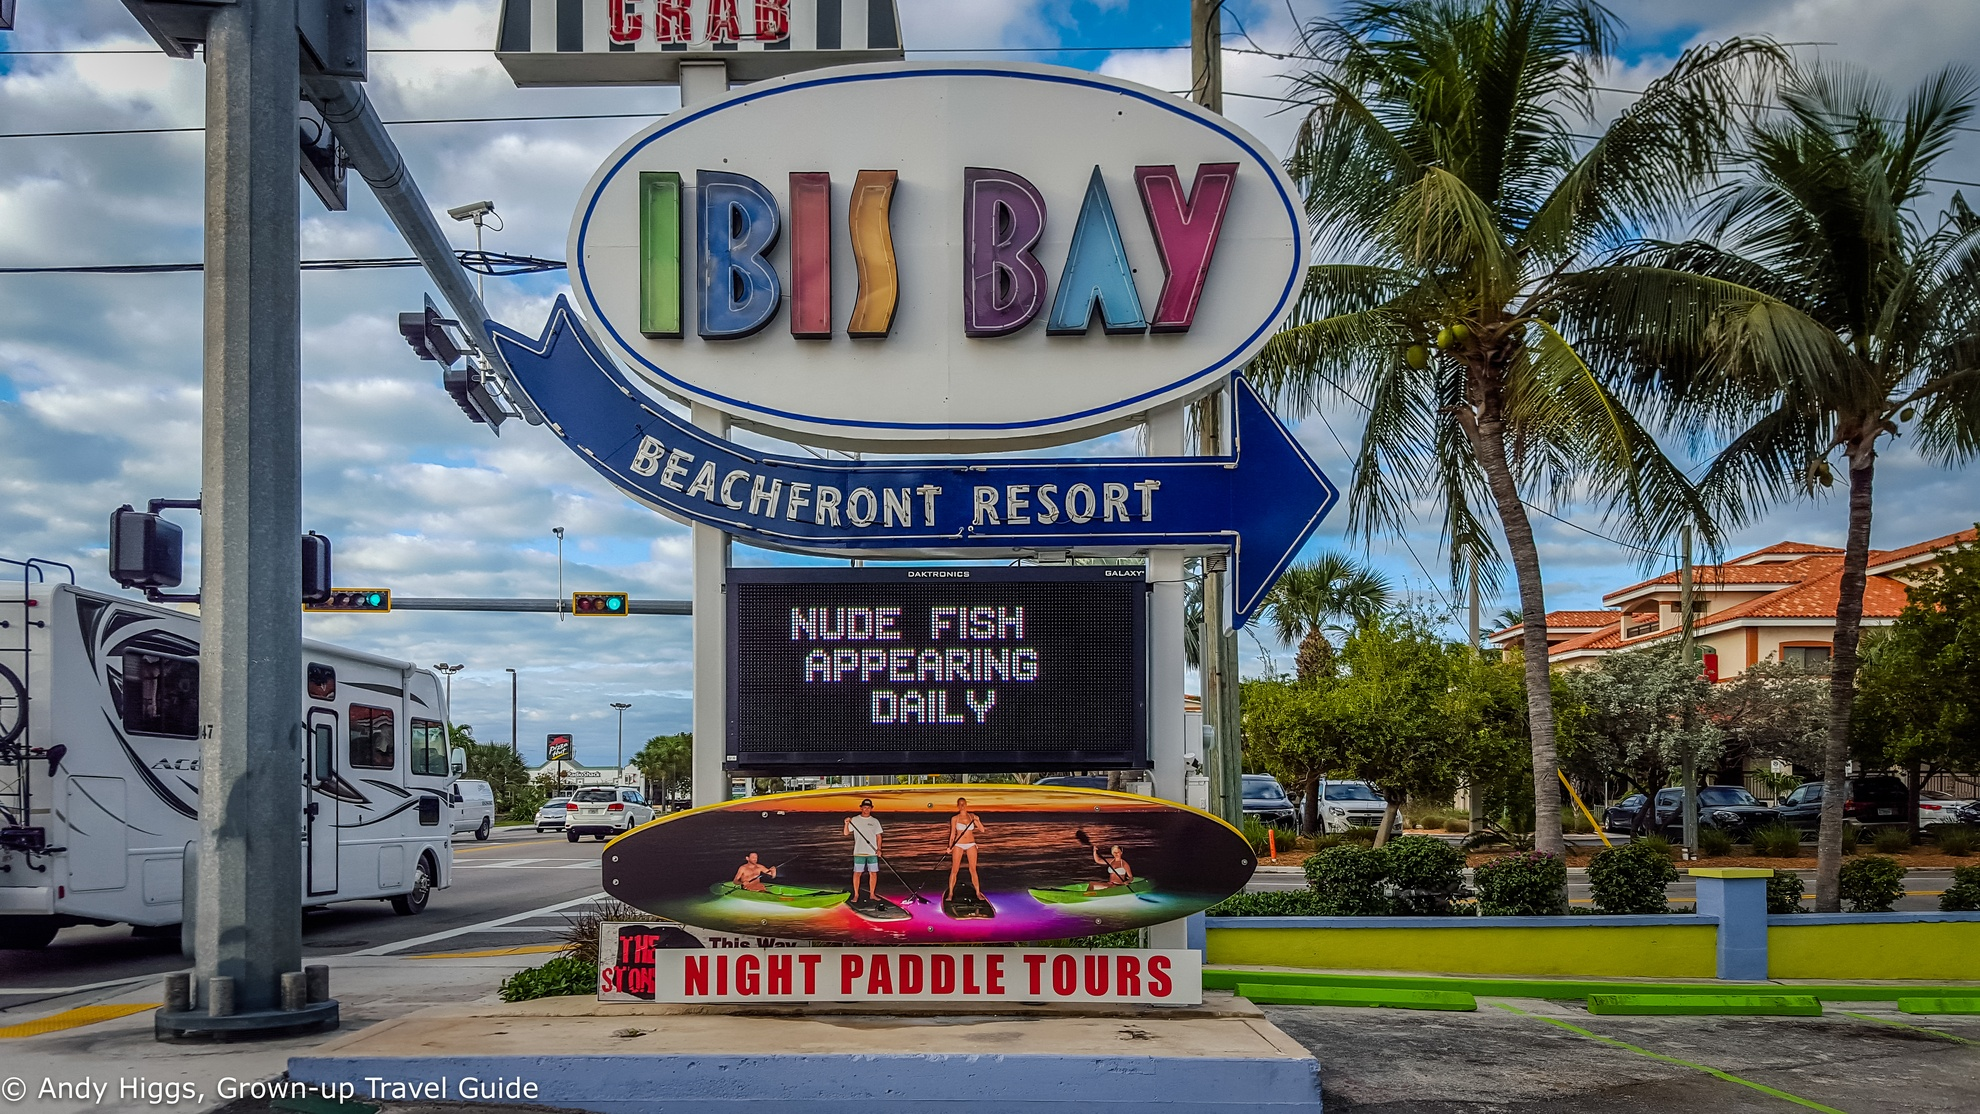 Read more about the article Hotel review: Ibis Bay Beach Resort, Key West, Florida